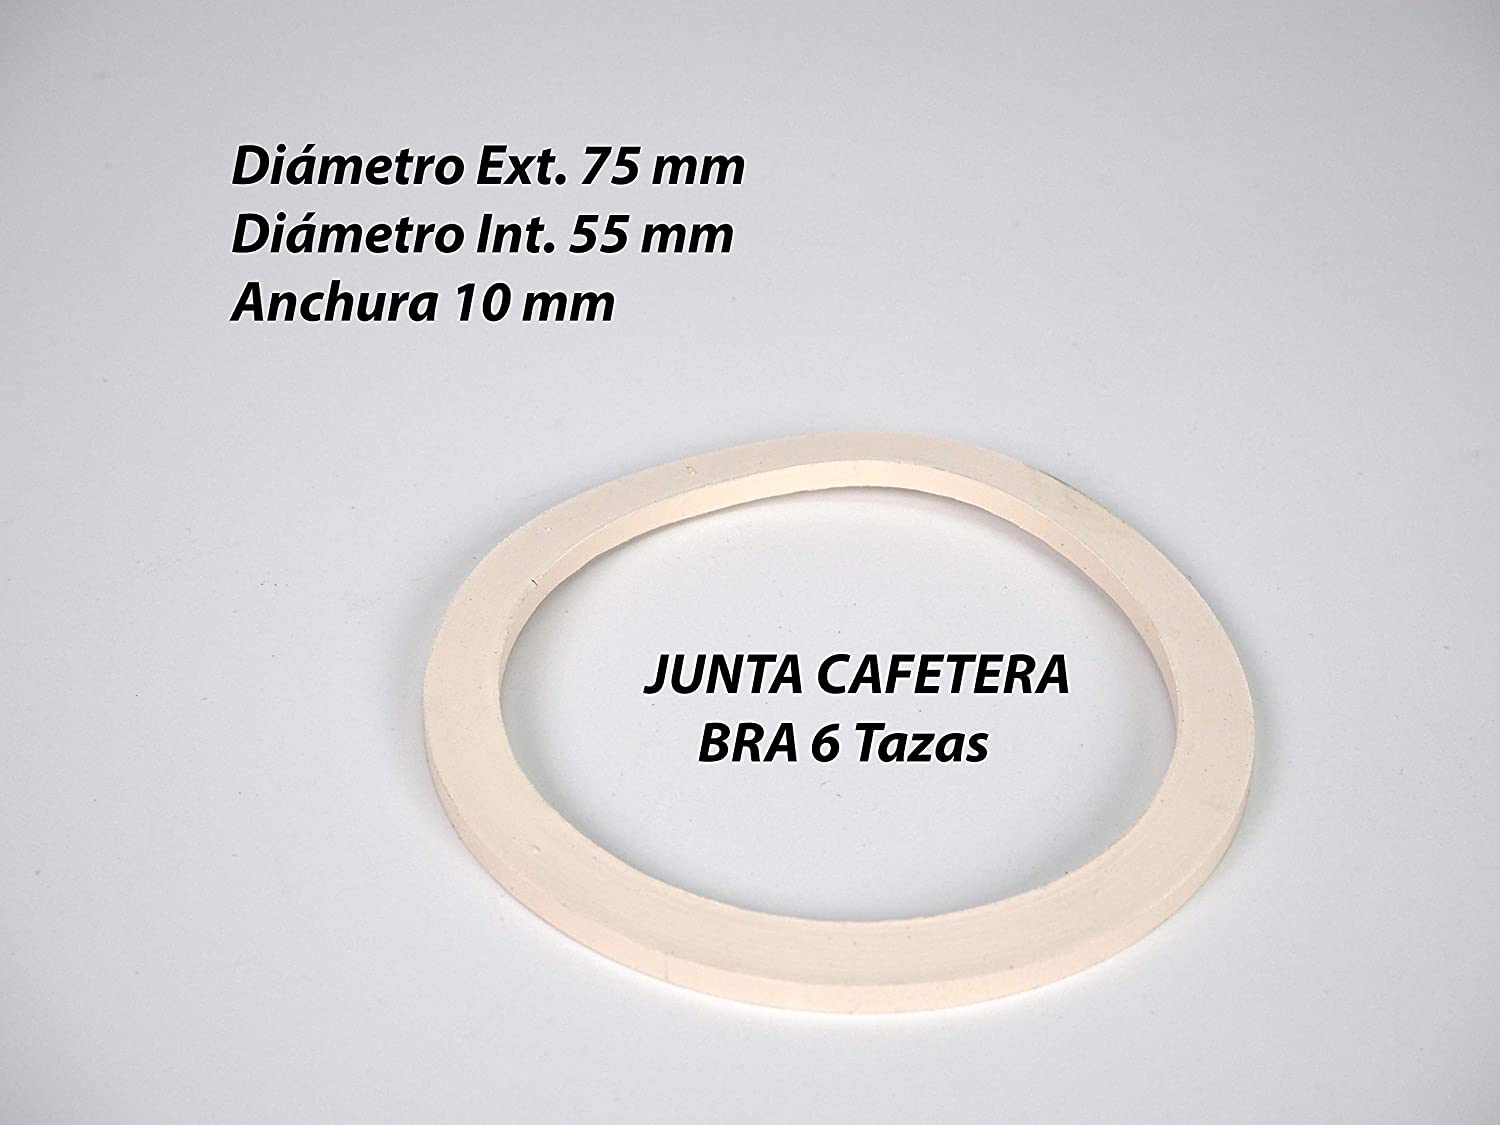 Amazon.com: Sanfor 57052 Blister Pack of 2 Gaskets for Bra ...